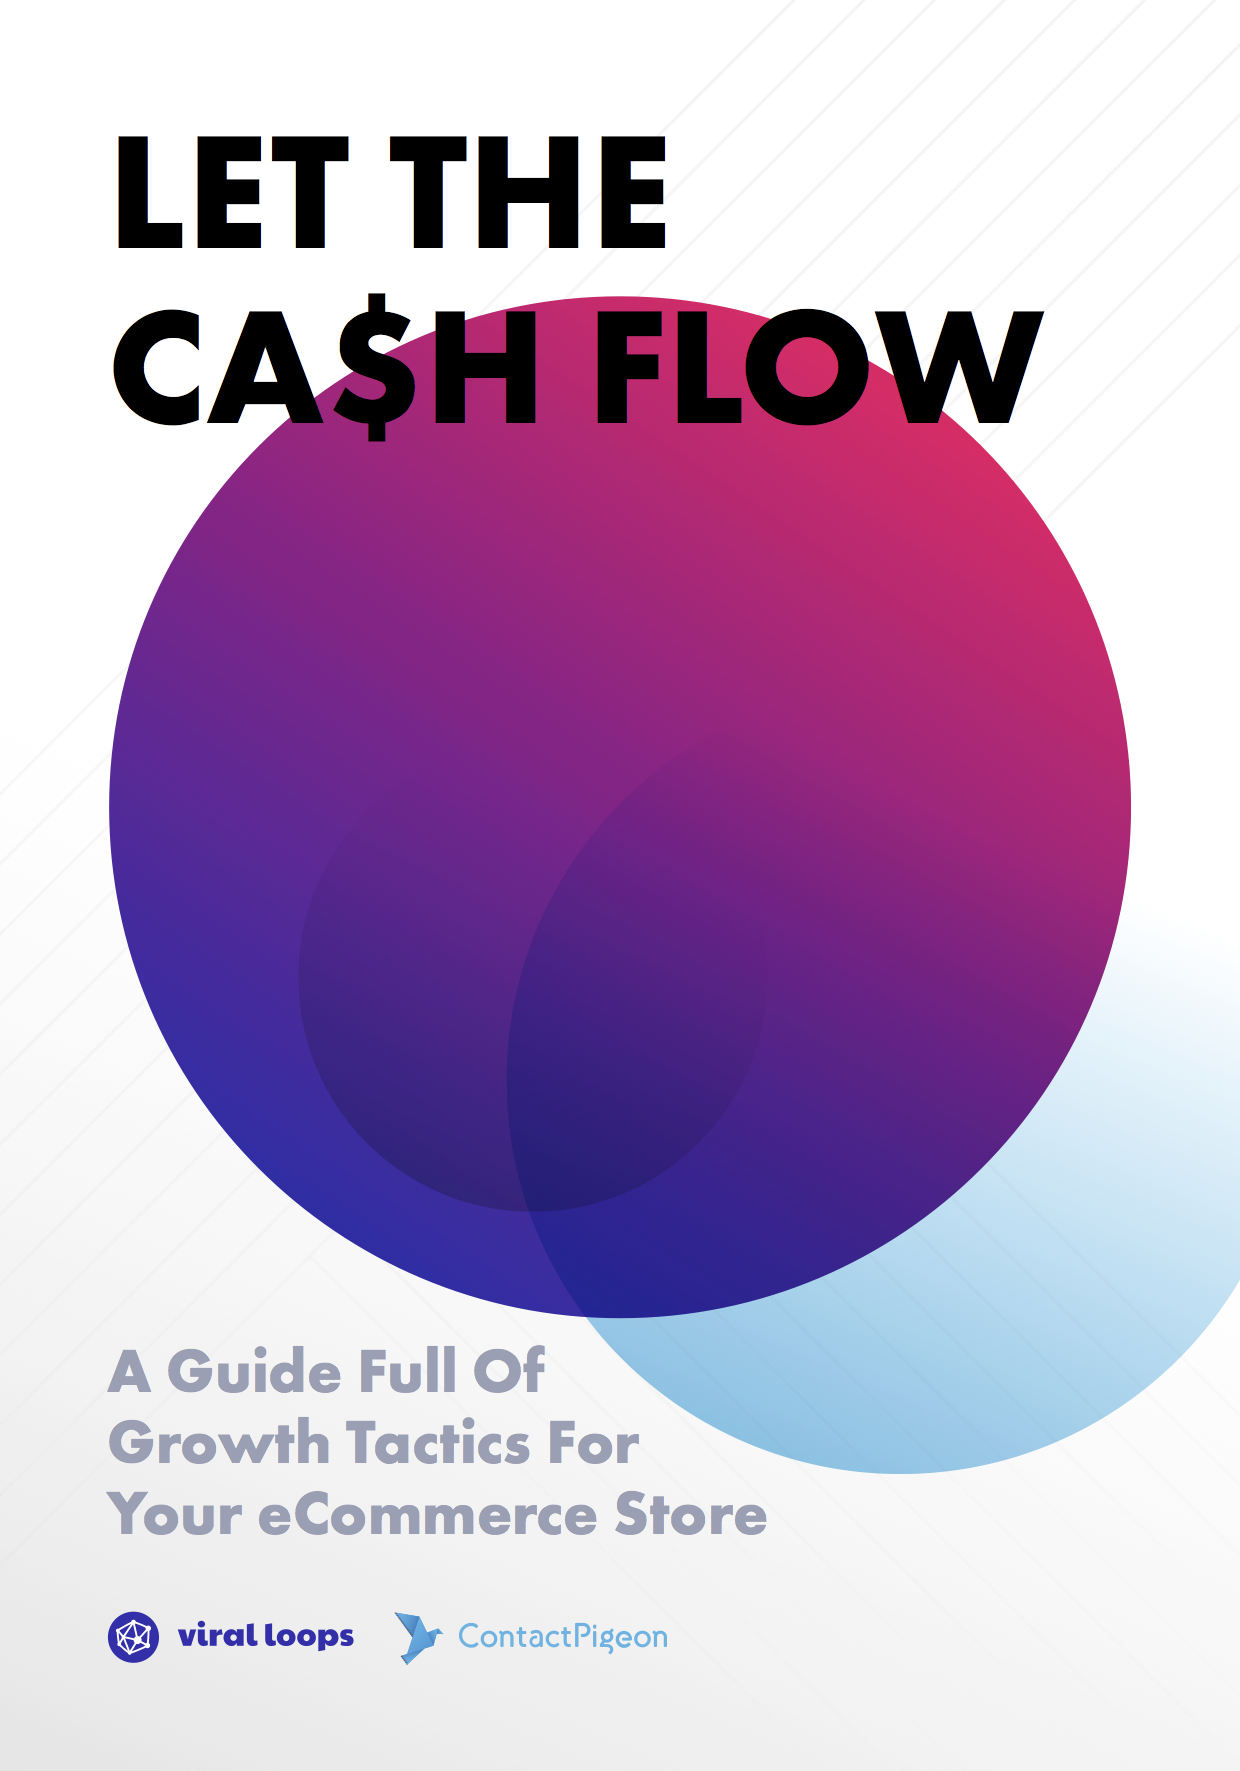 let the ca$h flow ecommerce growth tactics ebook cover